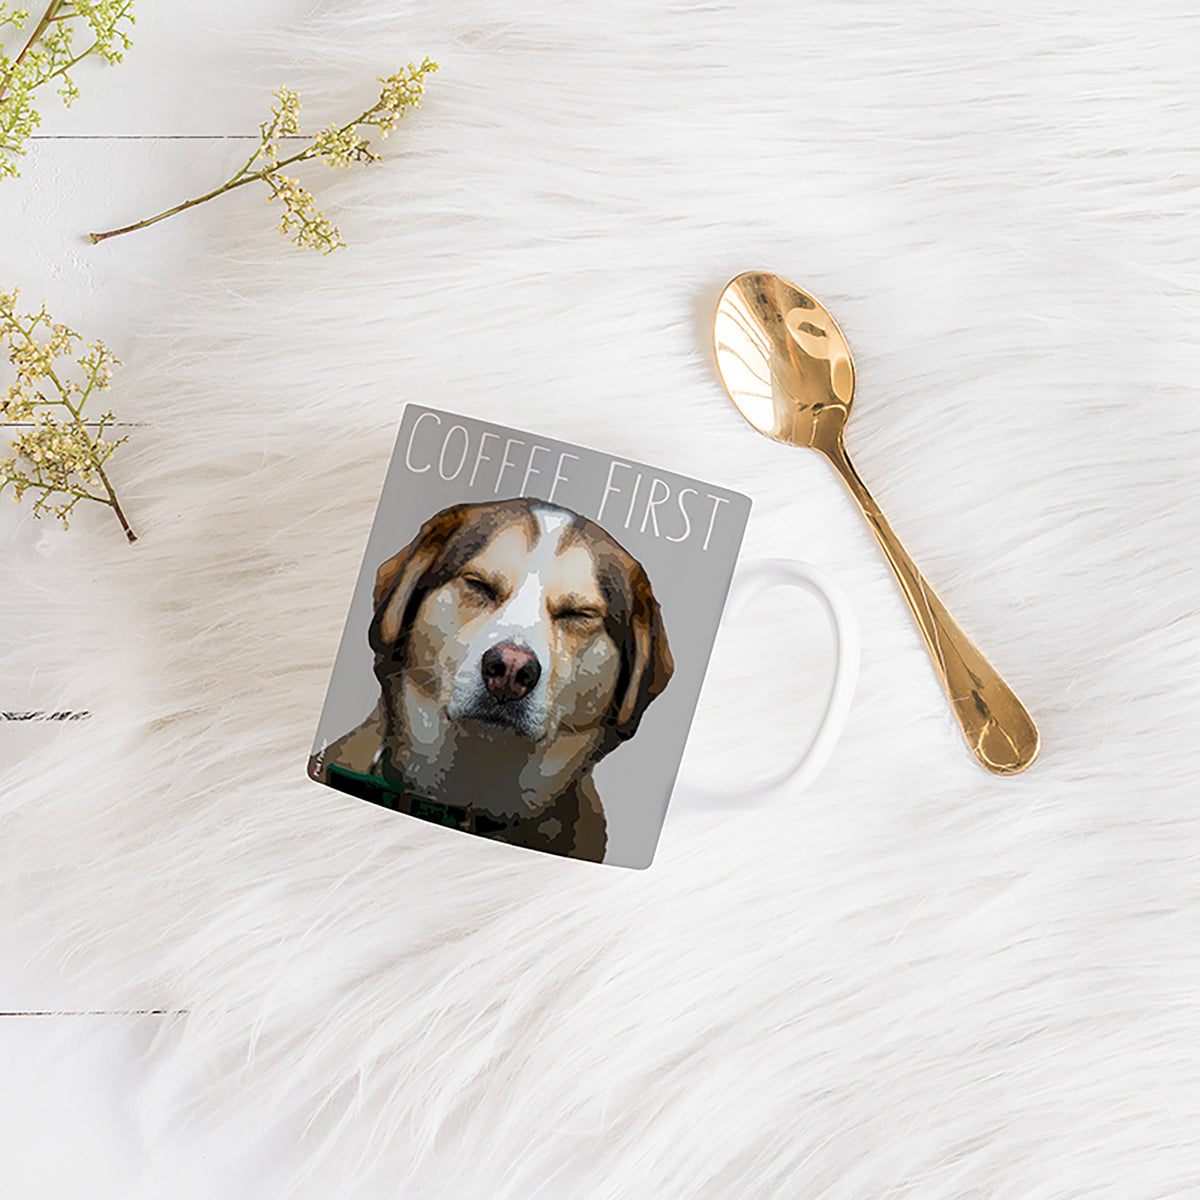 Personalized fun pet art of a dog on a mug